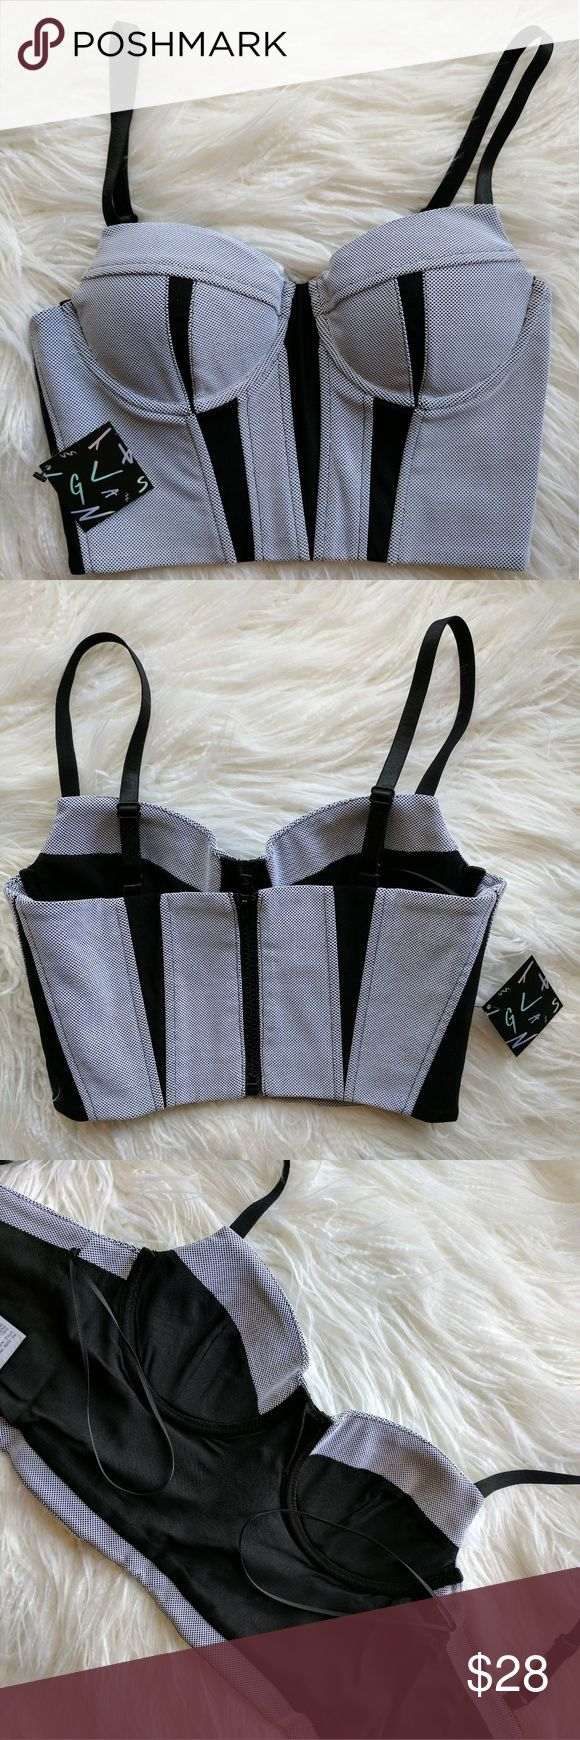 Extra small black leather gloves - Nwt Nasty Gal Corset Crop Top In Black And White Nwt